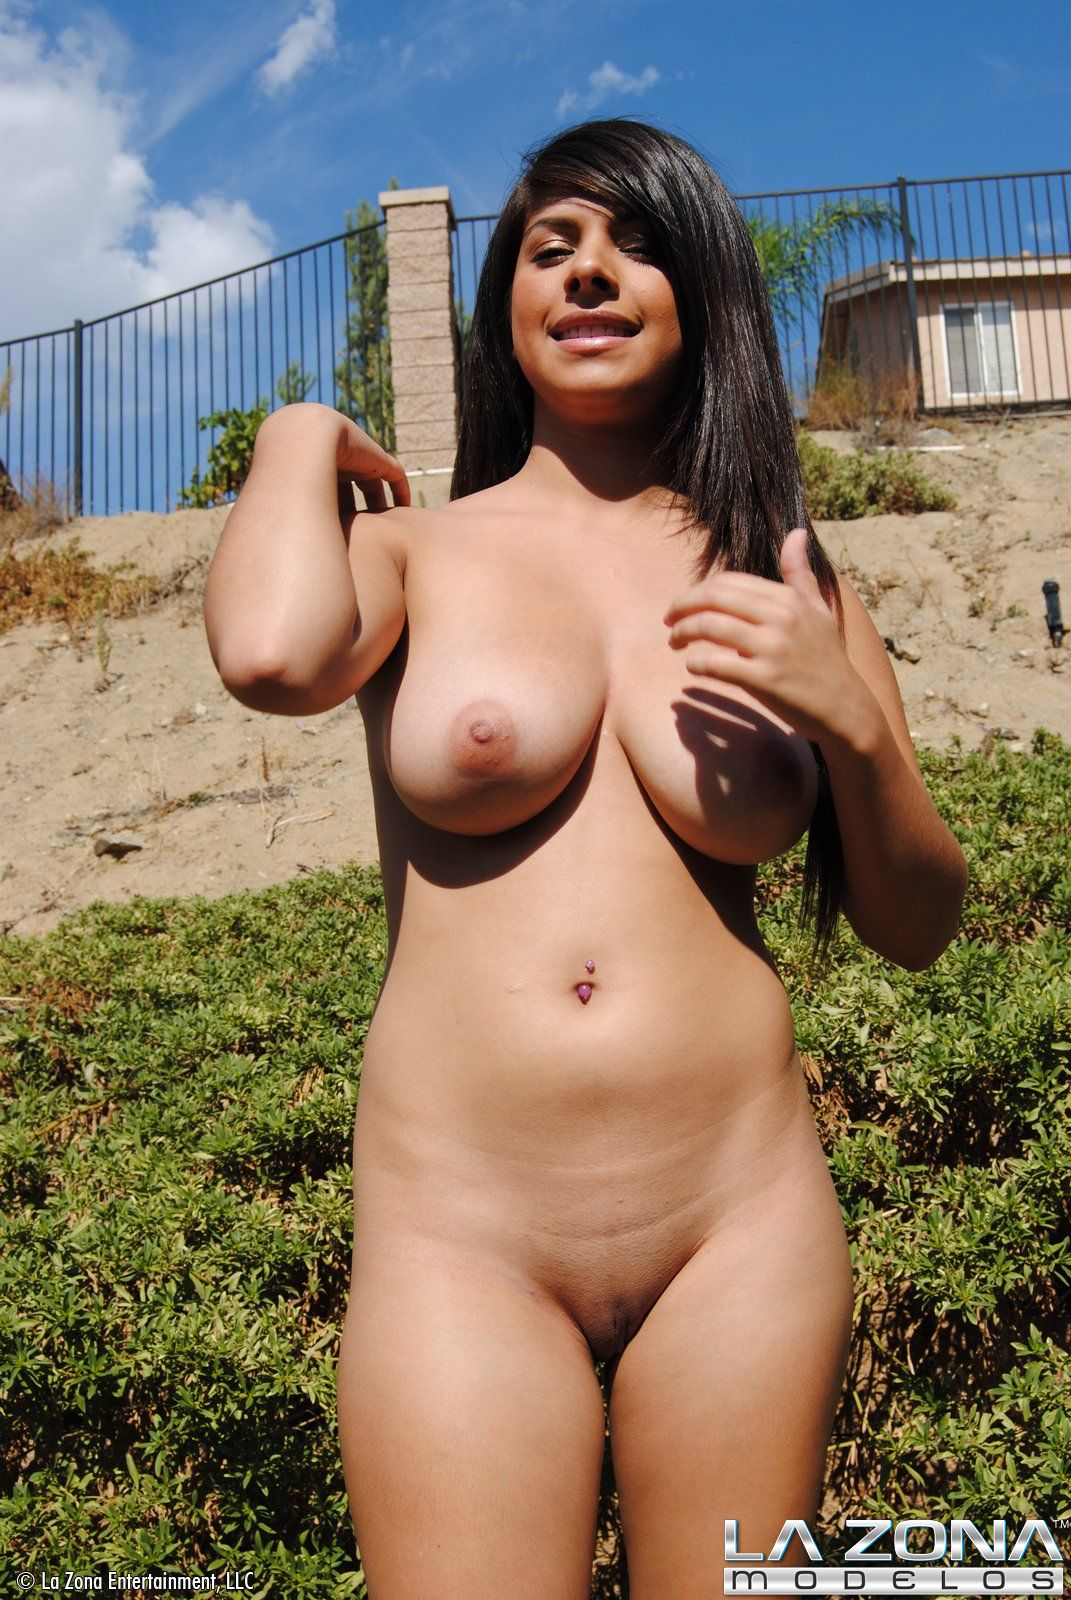 Pictures of amateur naked latina women